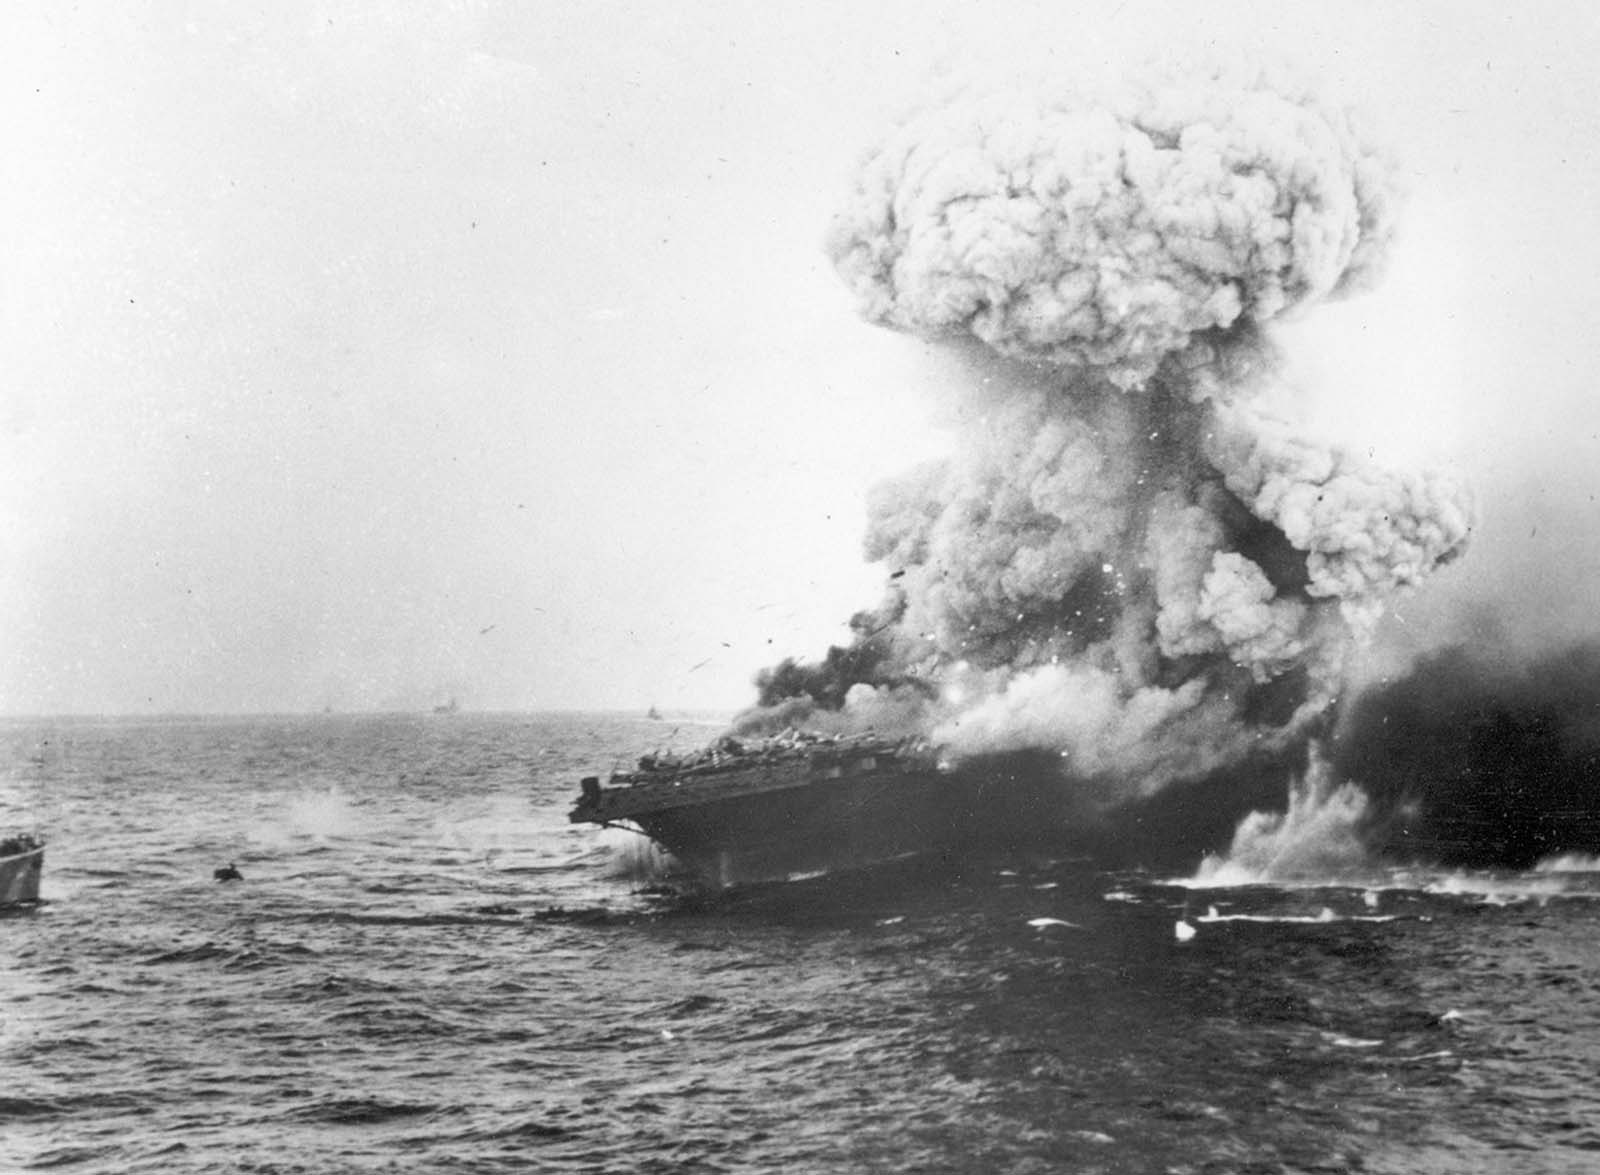 The USS Lexington explodes after being bombed by Japanese planes in the Battle of the Coral Sea in May of 1942. More than 200 of the carrier's 2,951-man crew went down with the ship. While Japanese forces won a tactical battle, a number of their damaged ships were unable to participate in the upcoming pivotal Battle of Midway, which took place one month later.